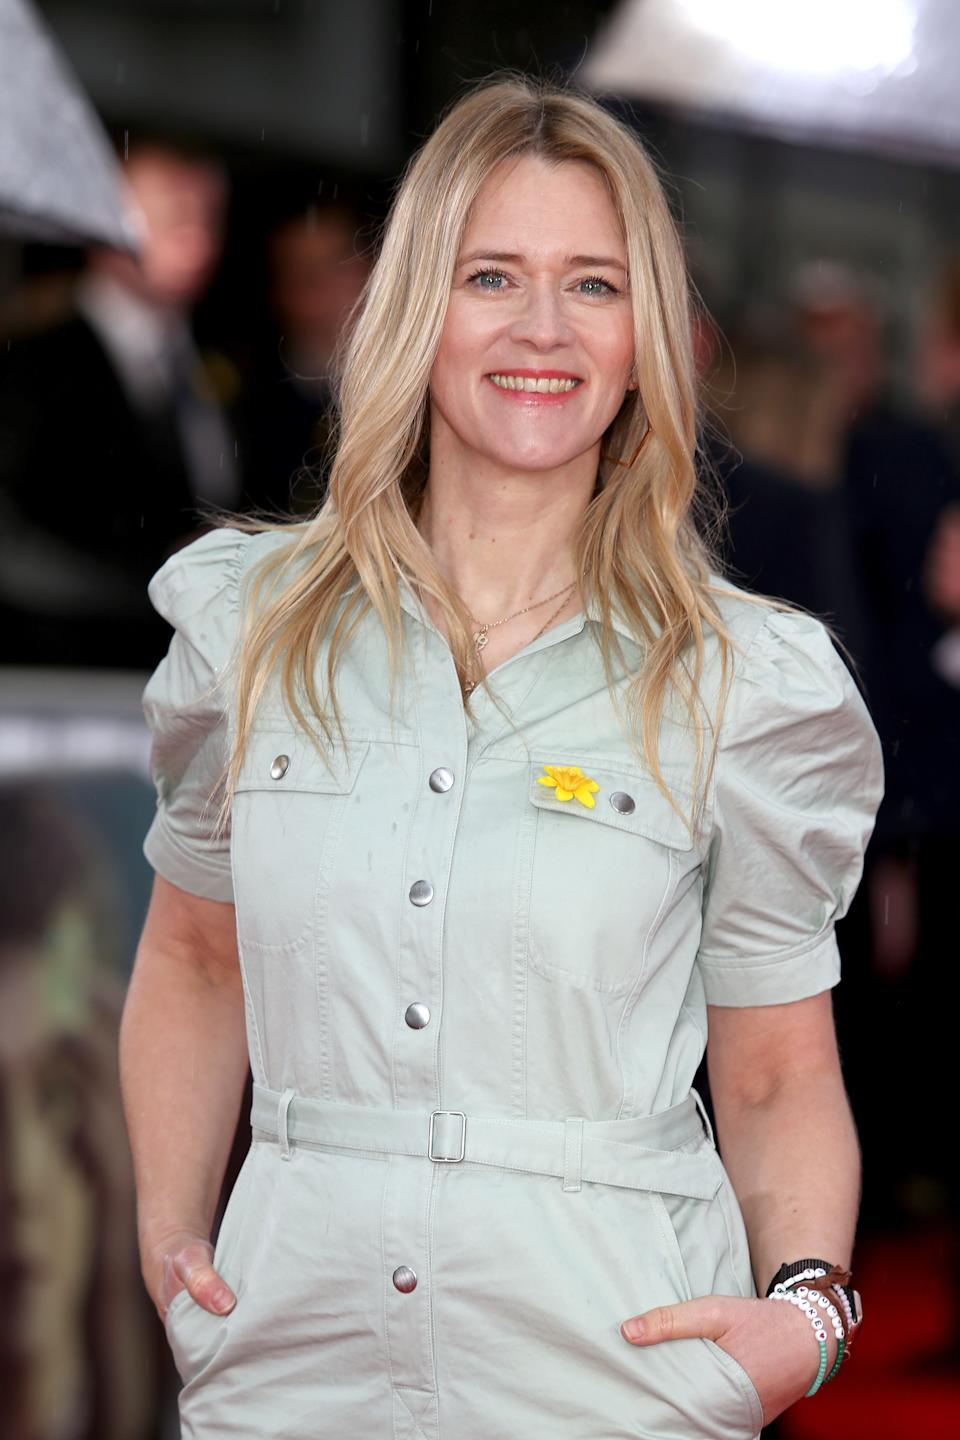 Edith Bowman is a spokesperson for the campaign. (Photo by Lauren Hurley/PA Images via Getty Images)